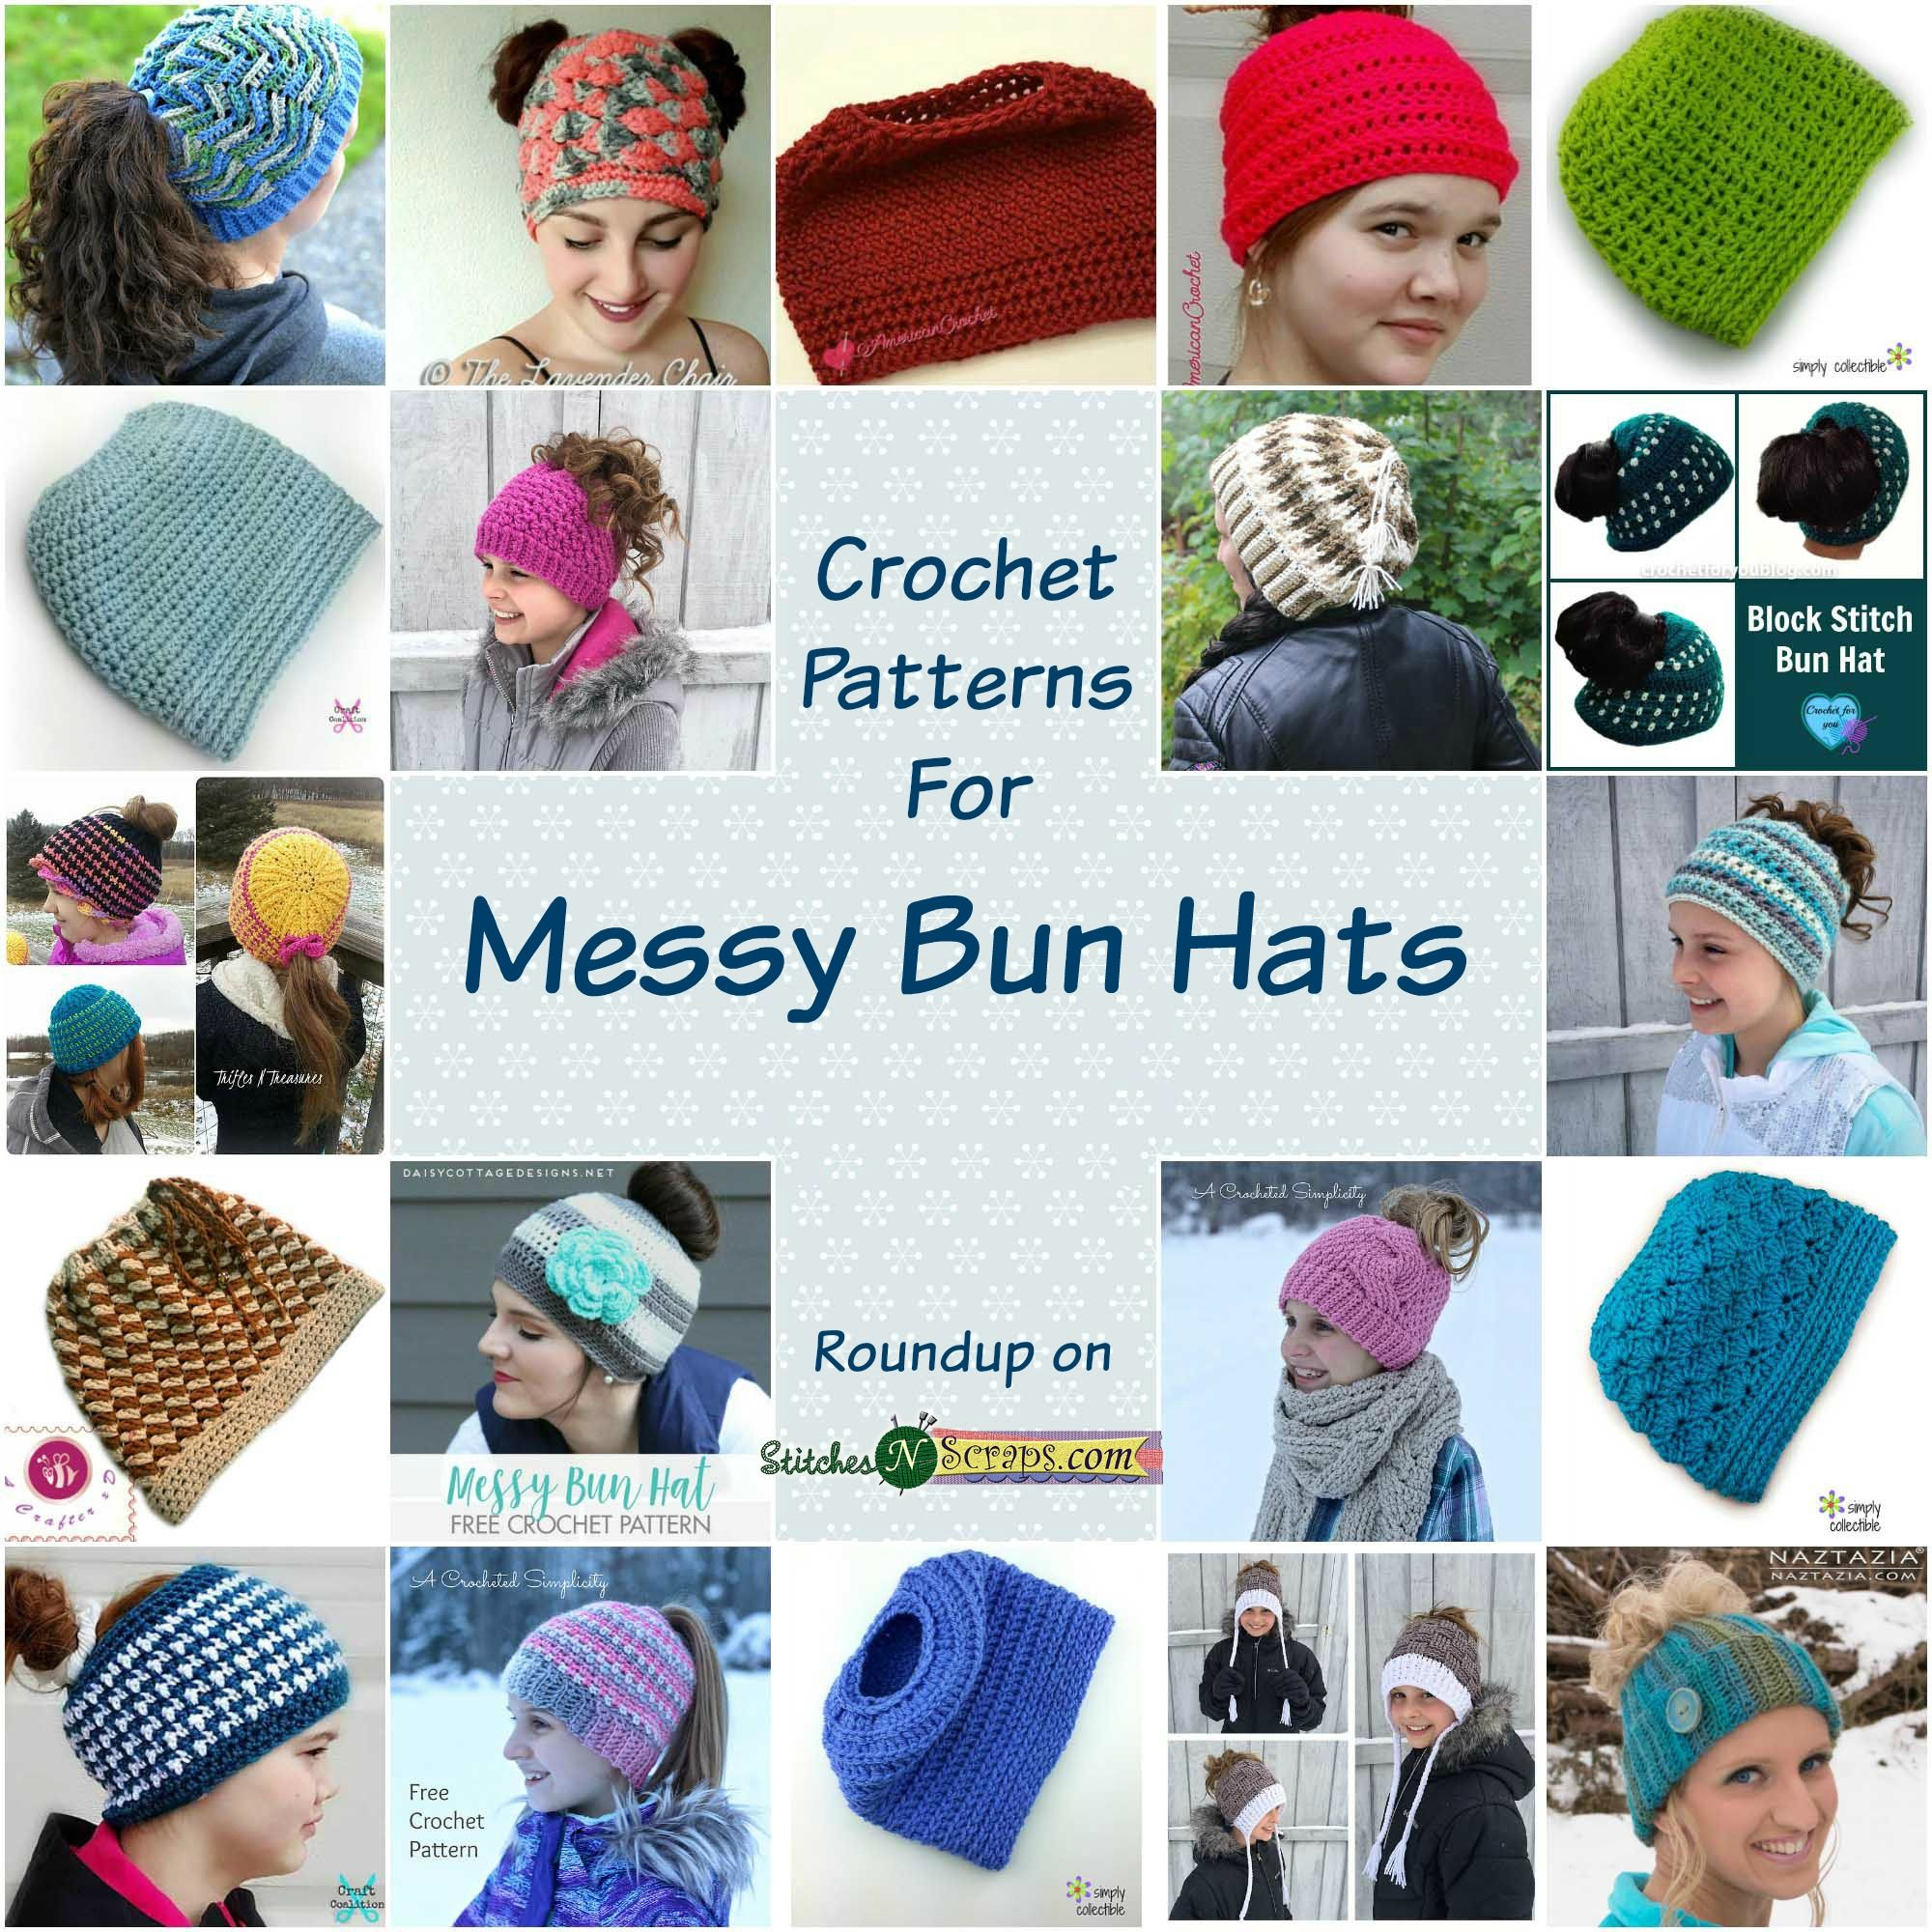 f41e32828d5 The messy bun ponytail hats have been popping up everywhere this week! In  case it has you itching to make one